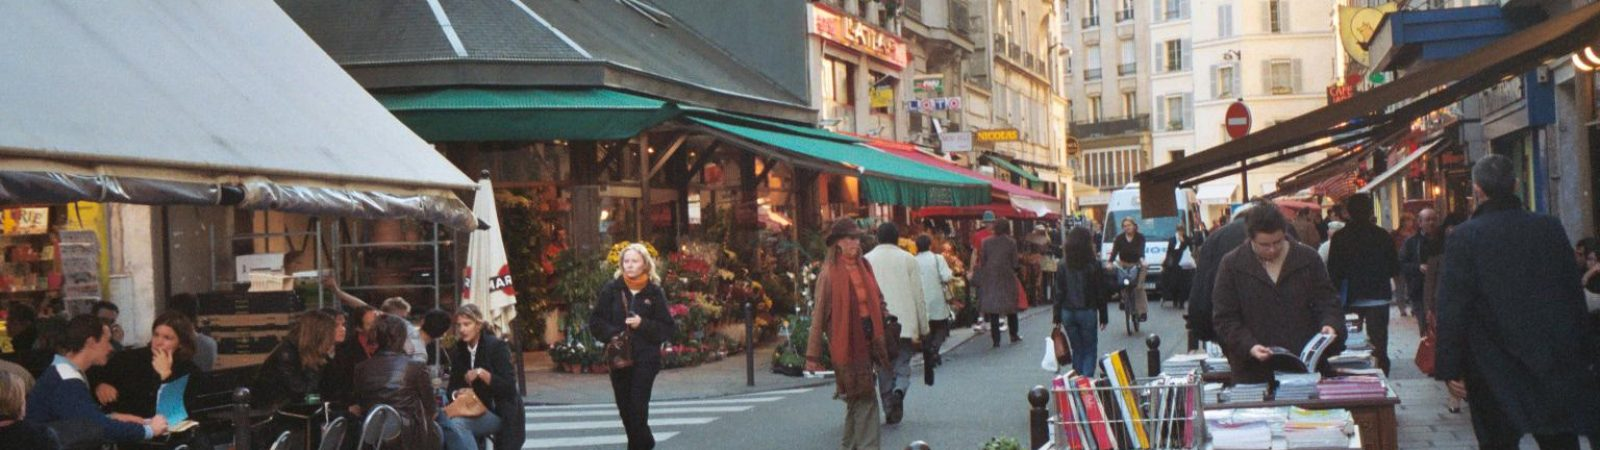 Saint Germain and Latin Quarter